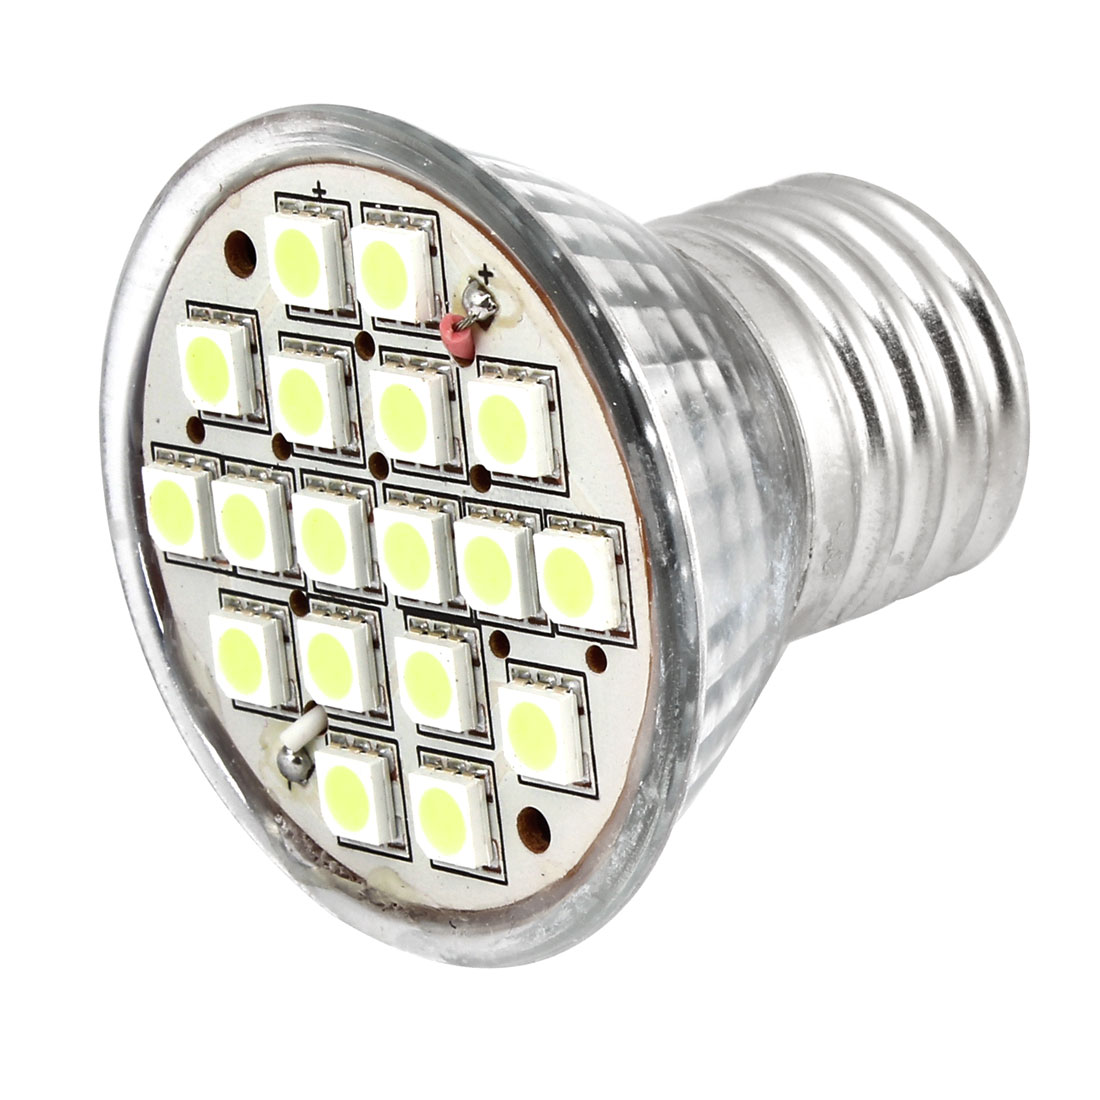 E27 Socket AC 110V White 18 5050 SMD LED Spot Light Energy Saving Bulb 6W